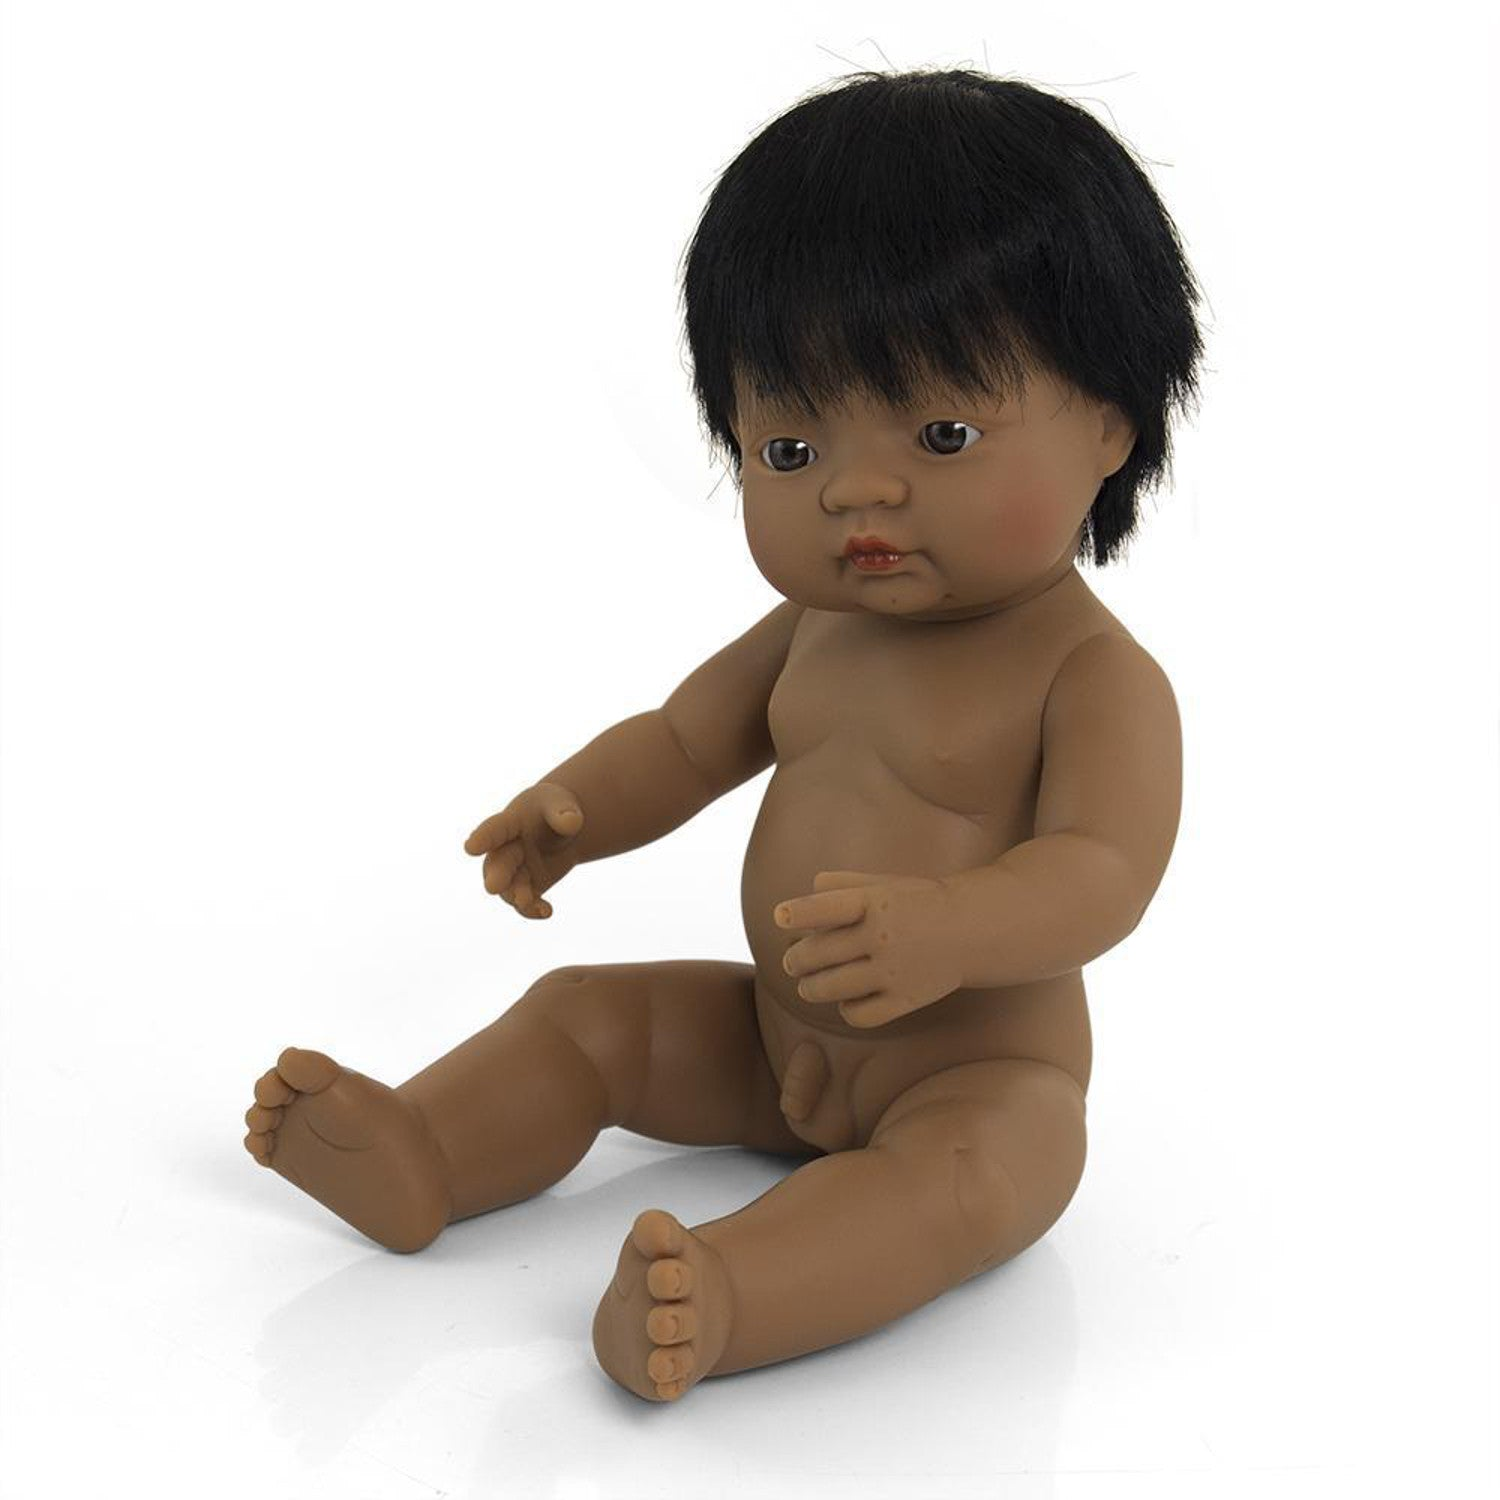 Miniland Doll 38cm Hispanic Boy